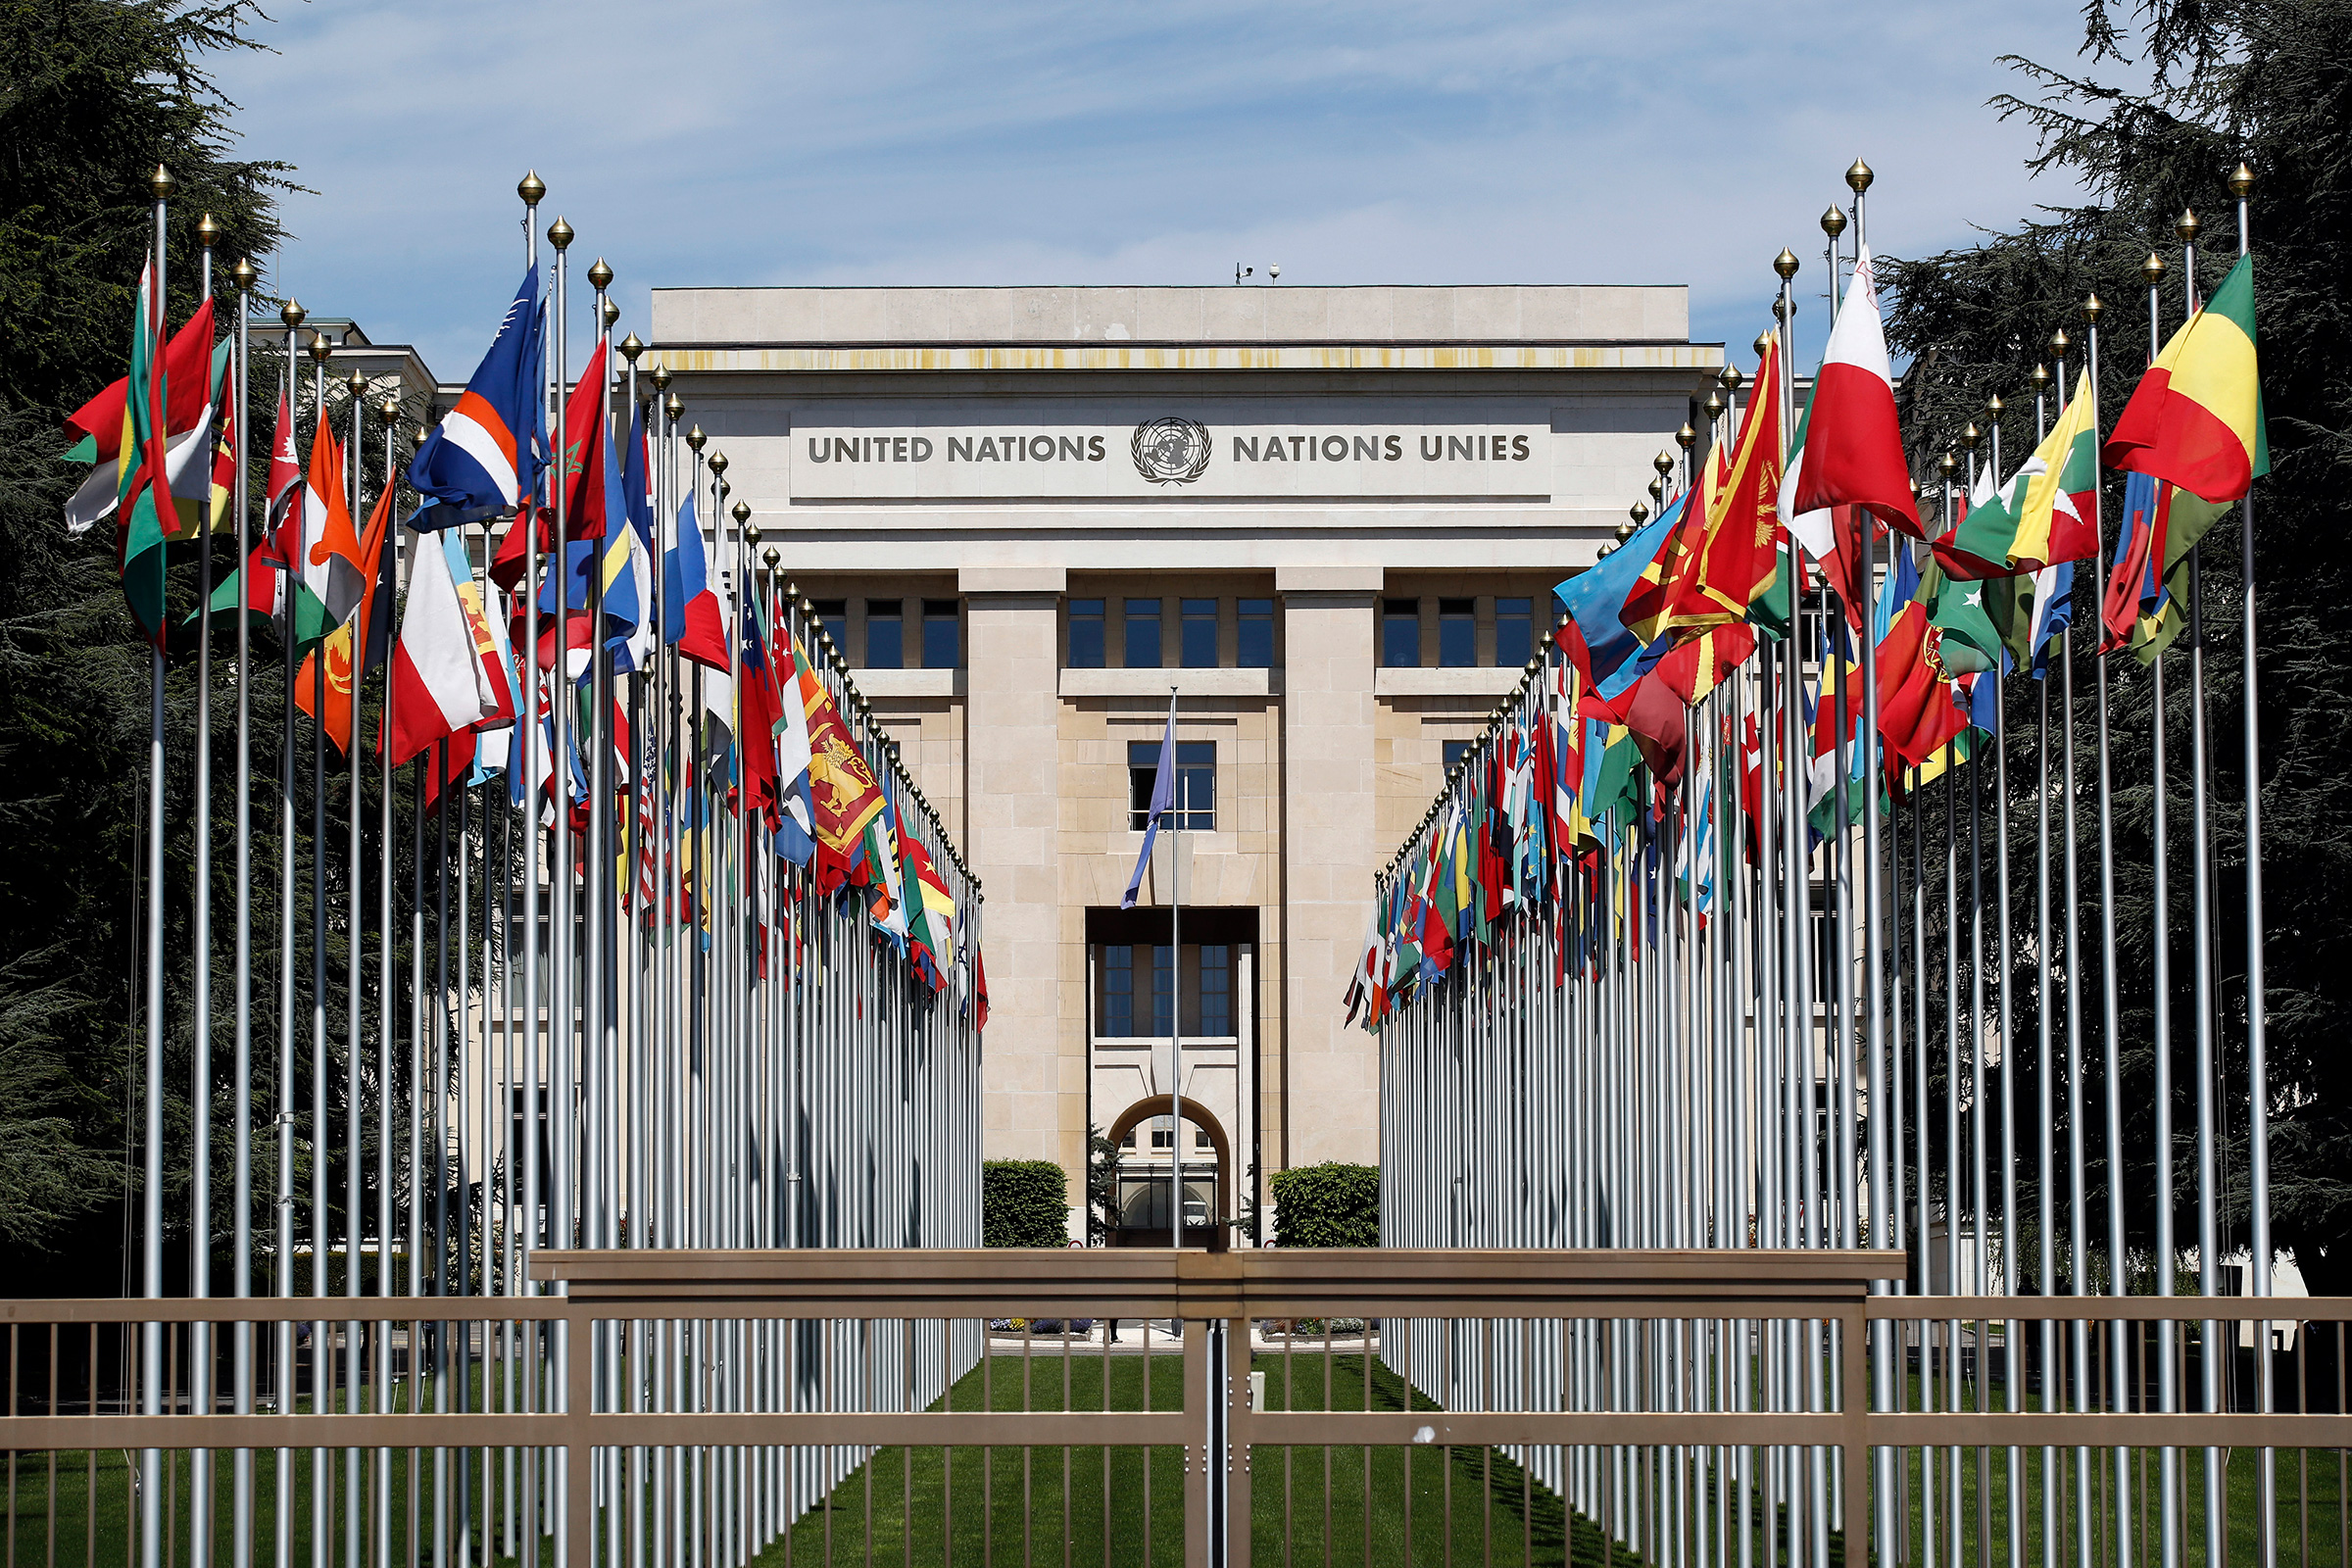 Flags stand outside the United Nations (UN) building in Geneva, Switzerland, on May 14, 2019.